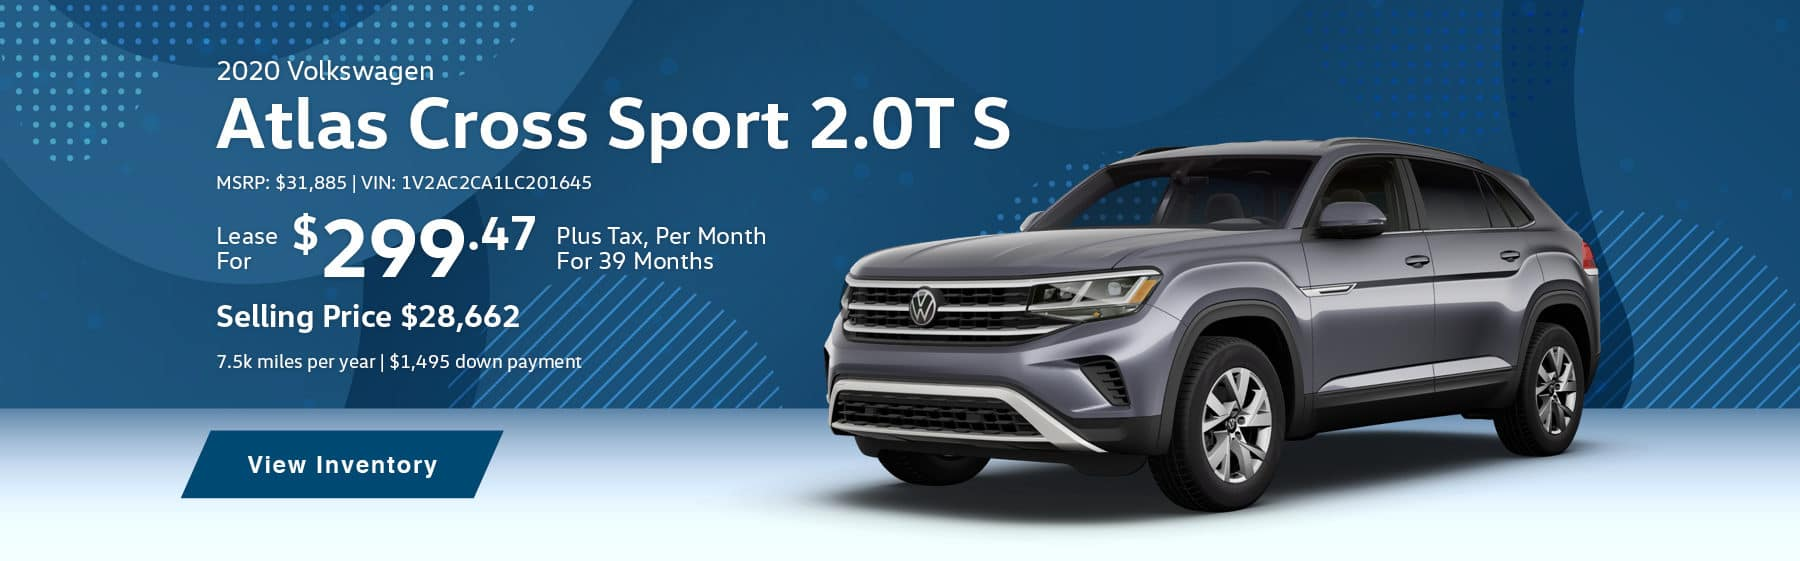 Lease the 2020 Jetta S Automatic for $181.37 per month, plus tax for 39 months. Lease the 2020 Tiguan S for $226.46 per month, plus tax for 39 months. Lease the 2020 Passat S for $200.78 per month, plus tax for 39 months. Lease the 2020 Atlas Cross Sport 2.0T S for $299.47 per month, plus tax for 39 months.